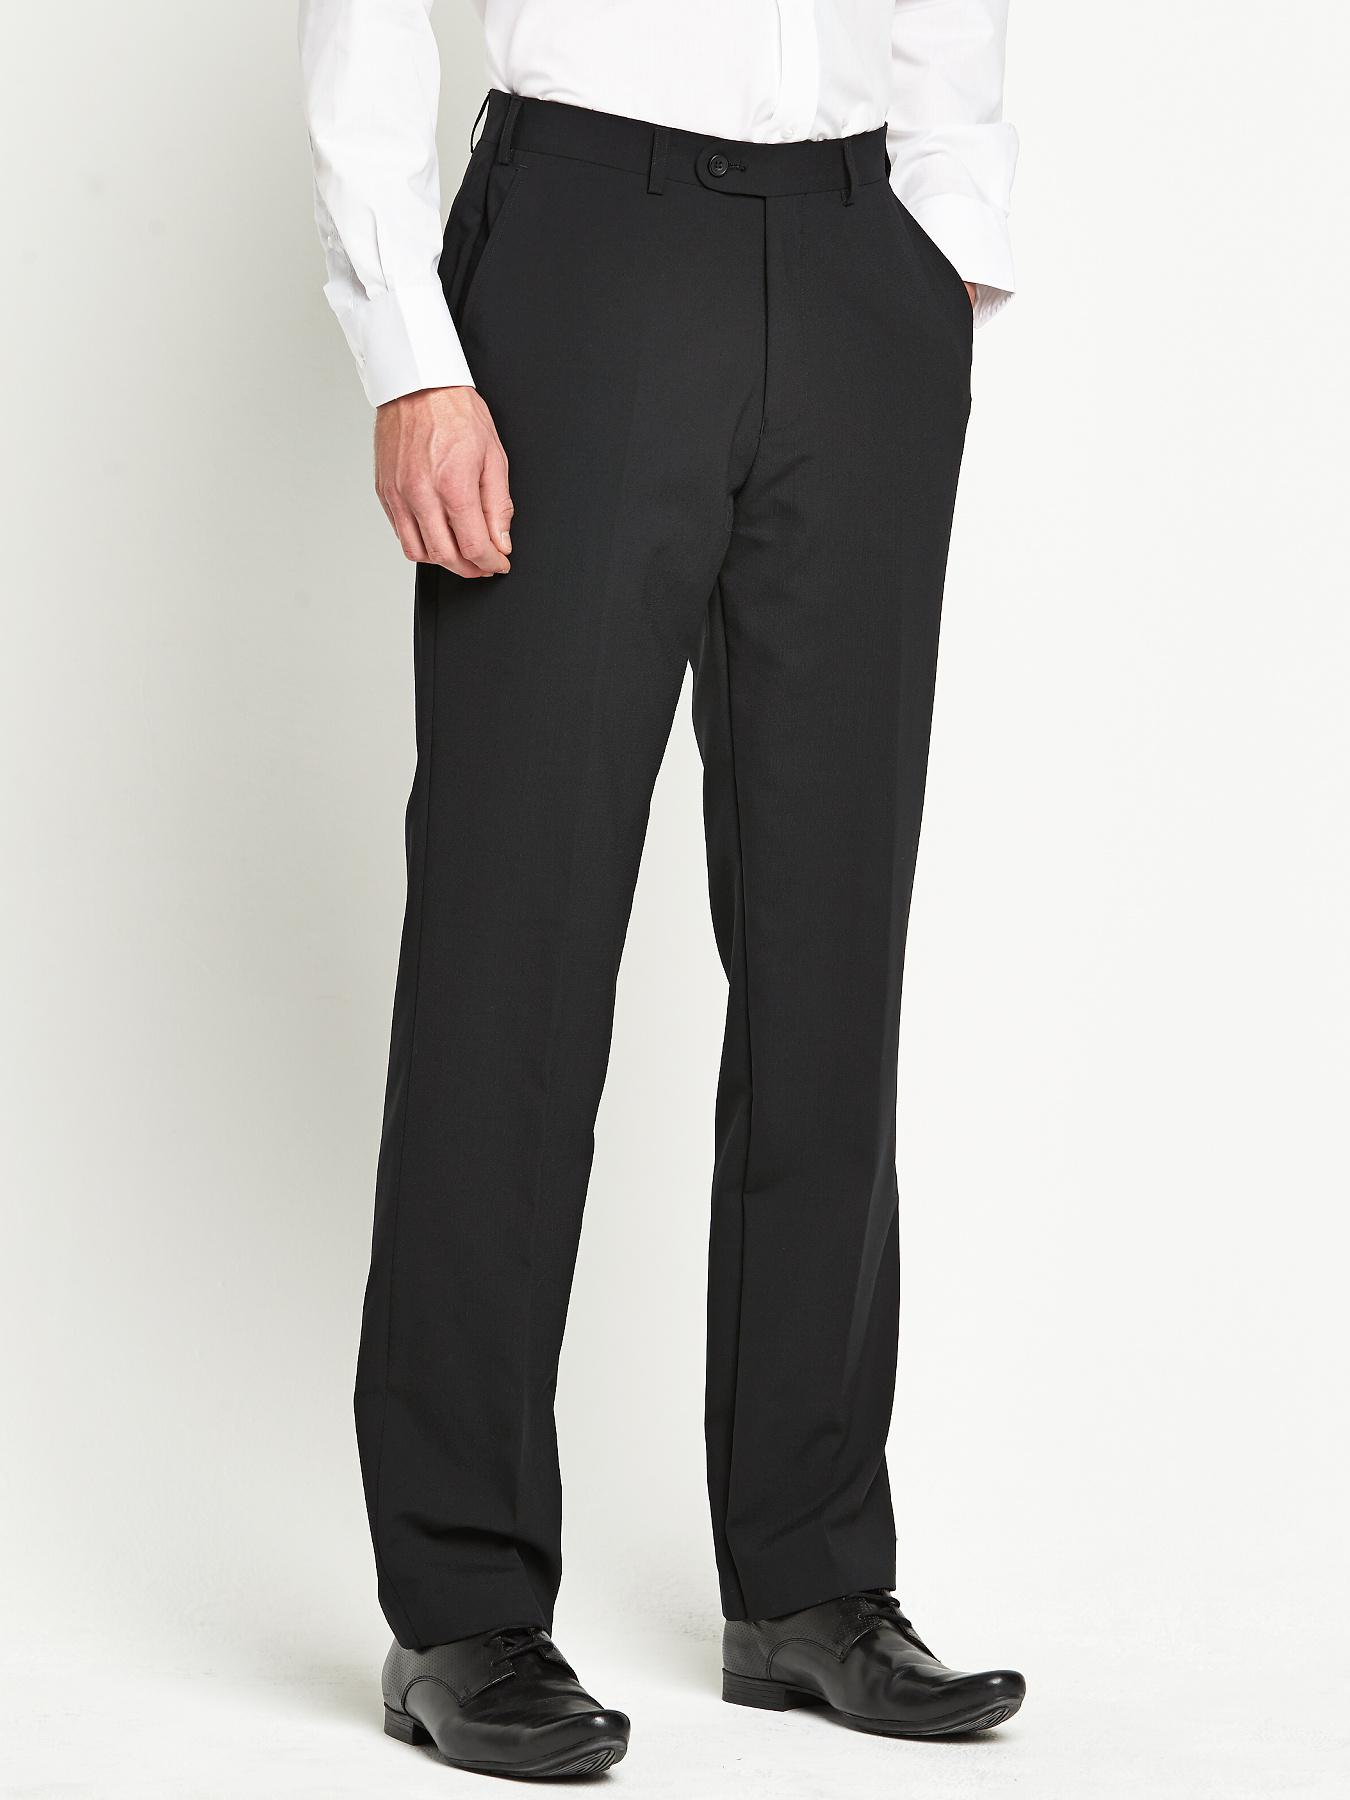 Skopes Mens Ohio Suit Trousers - Black - Black, Black